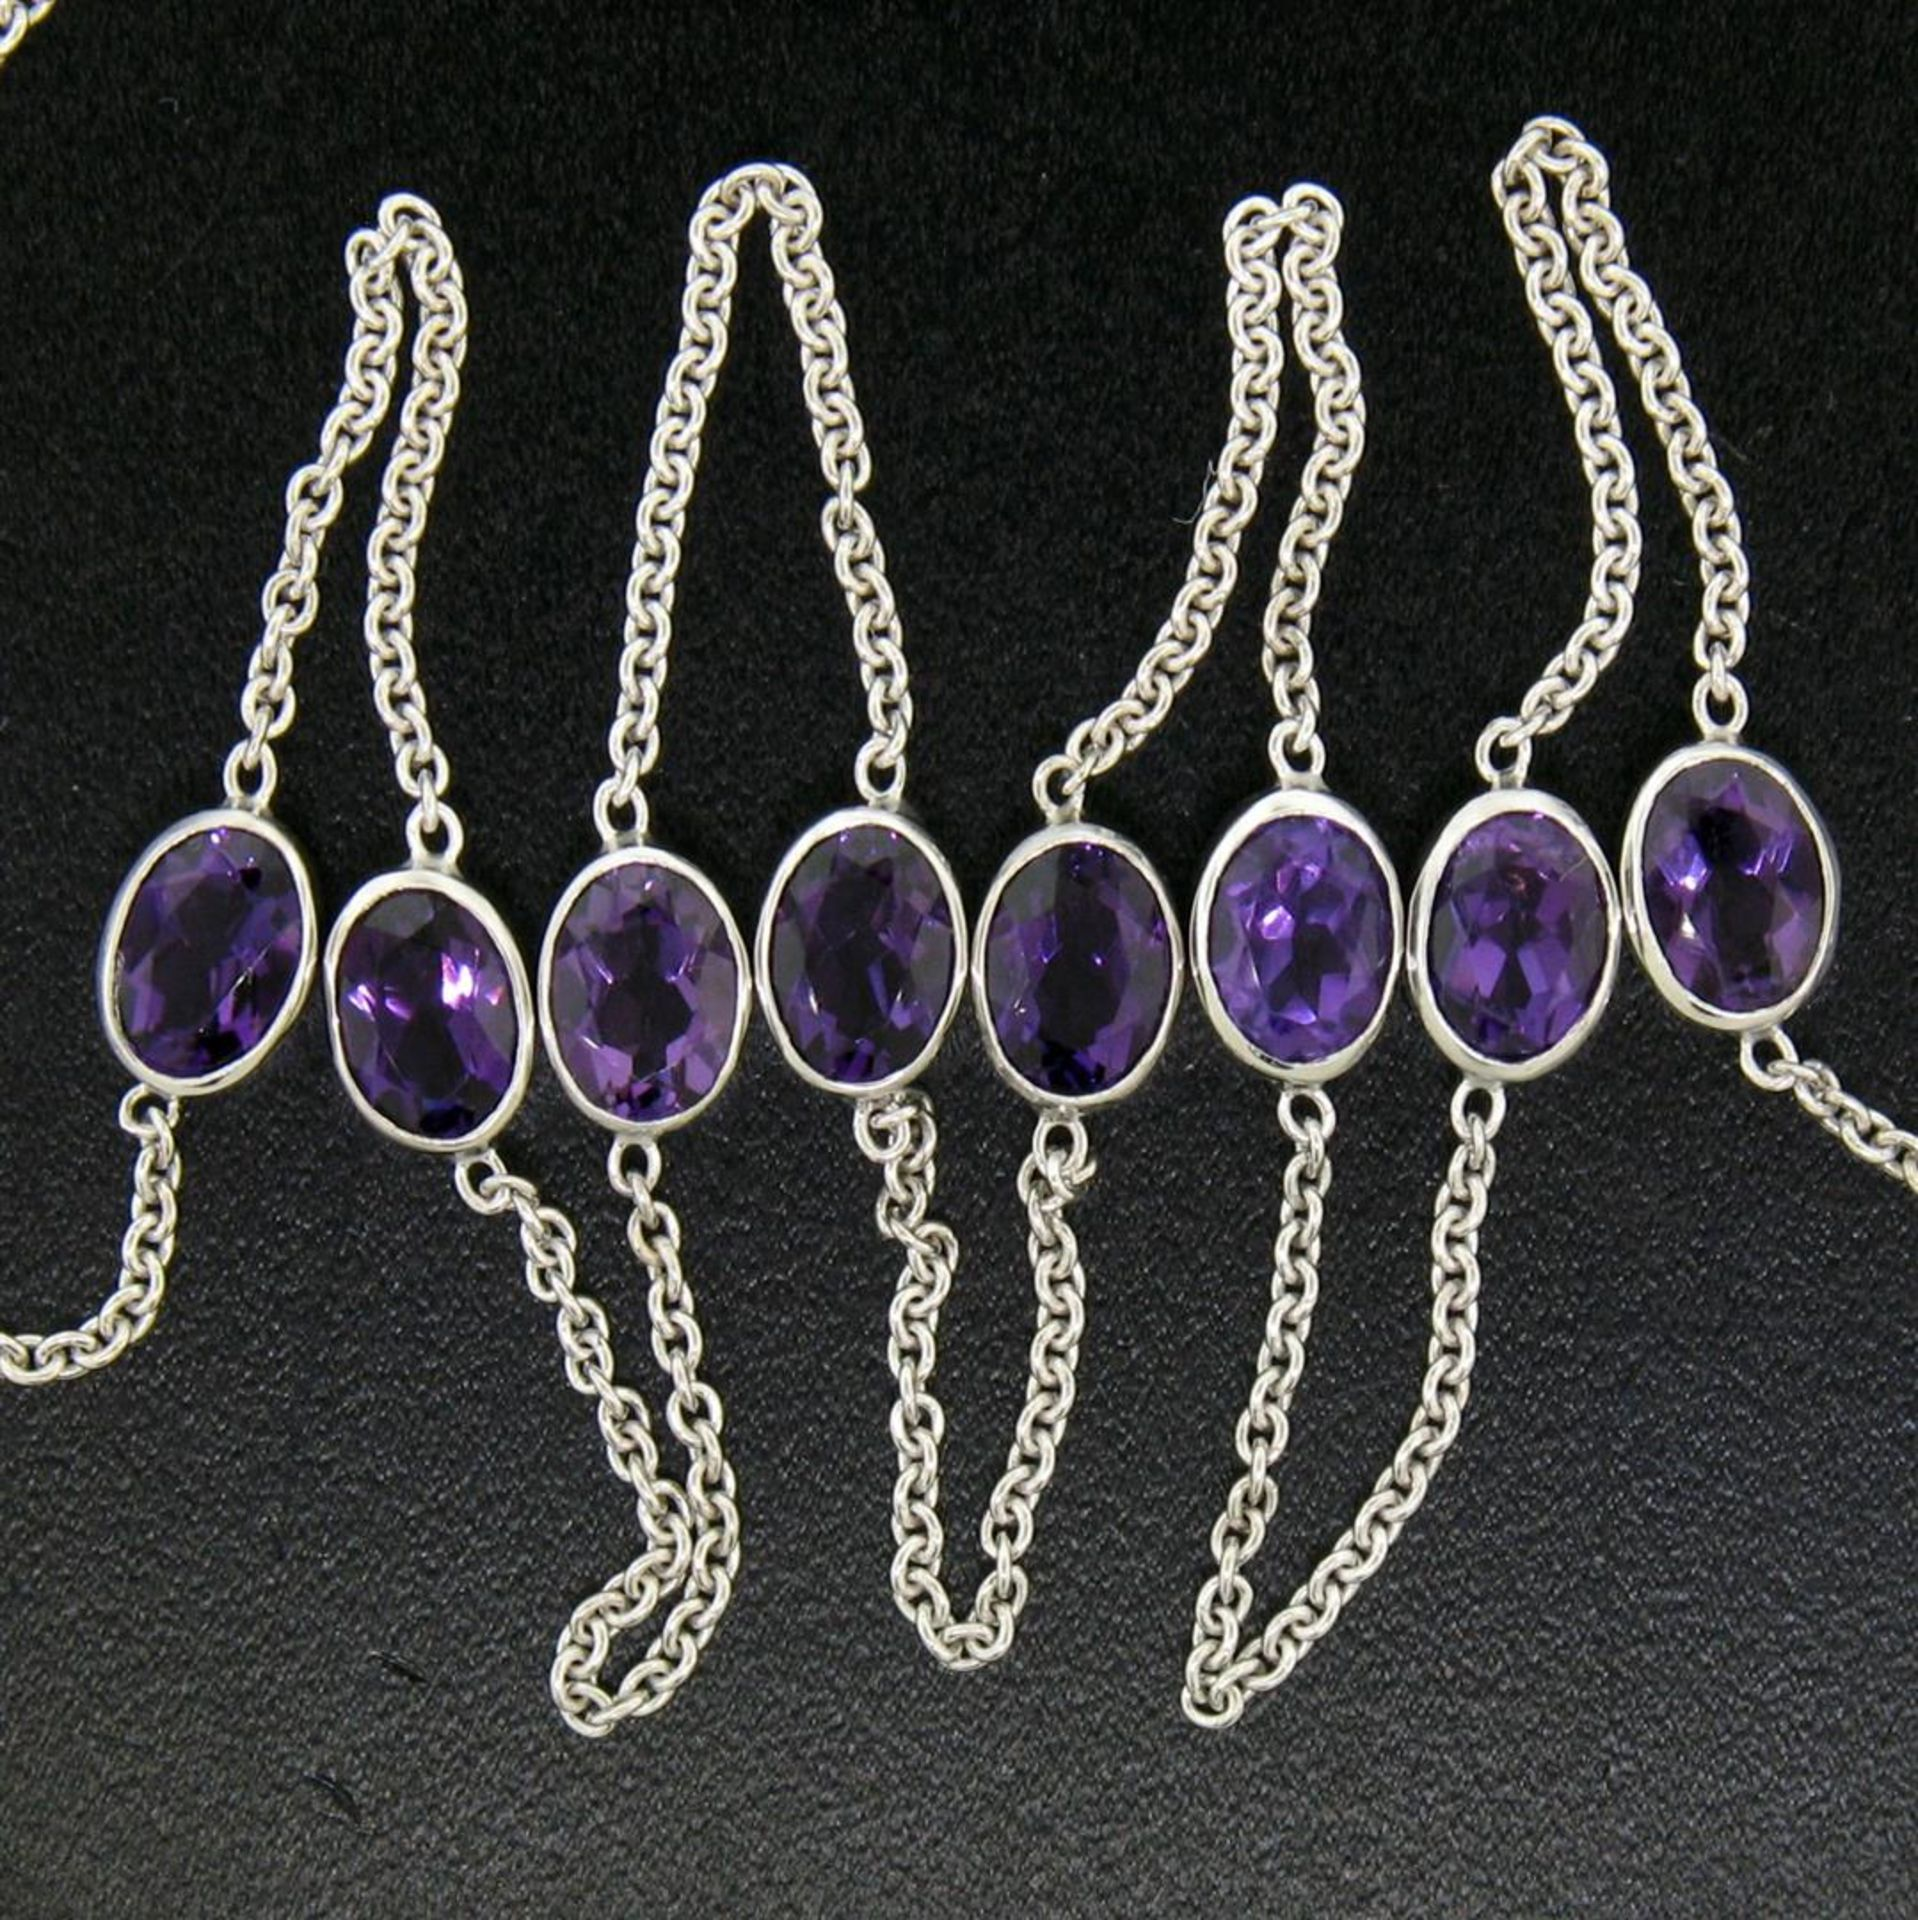 """14k White Gold 8 ctw 8 Station Amethyst by the Yard 20"""" Cable Link Chain Necklac - Image 5 of 7"""